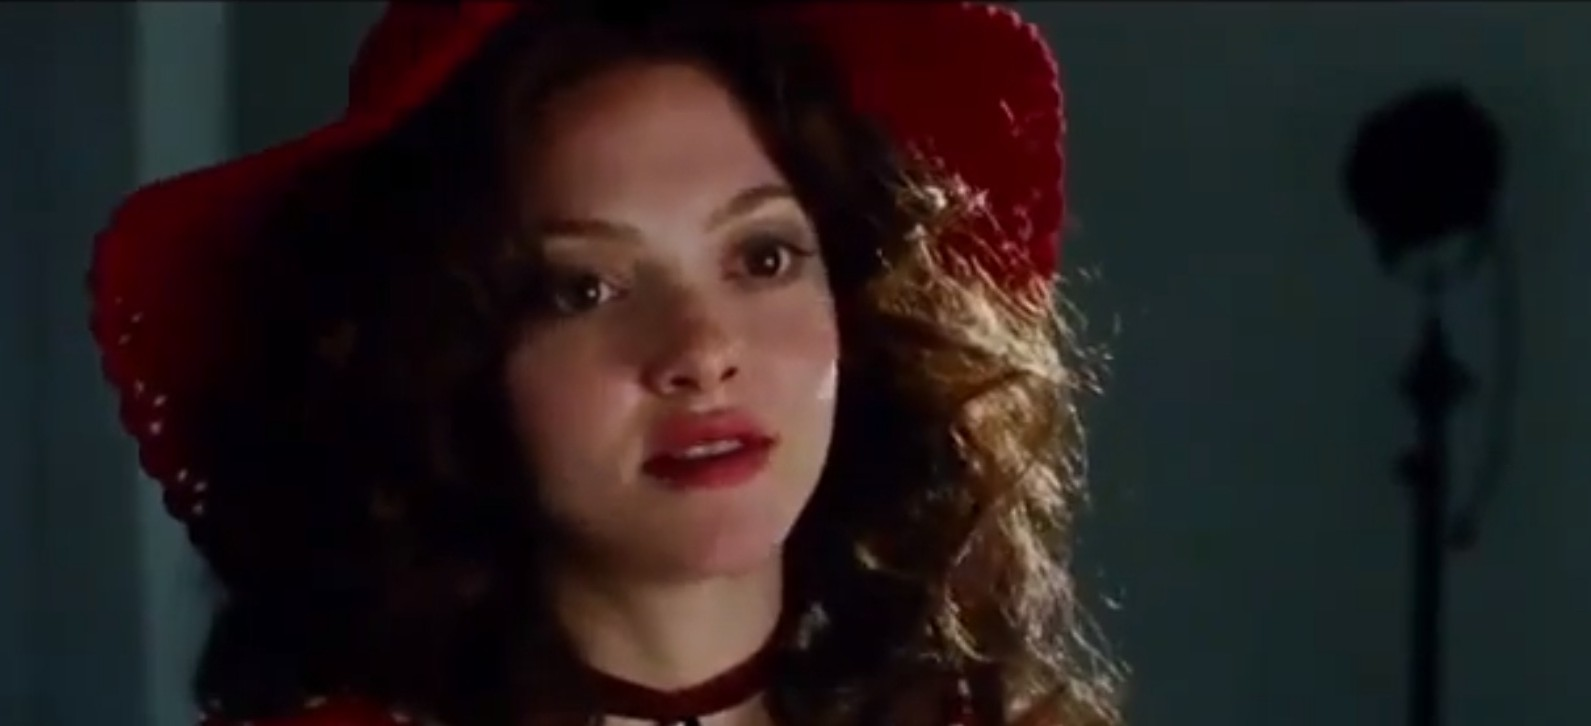 Porn star biopic Lovelace makes trailer debut, charting rise of Deep Throat XXX movie